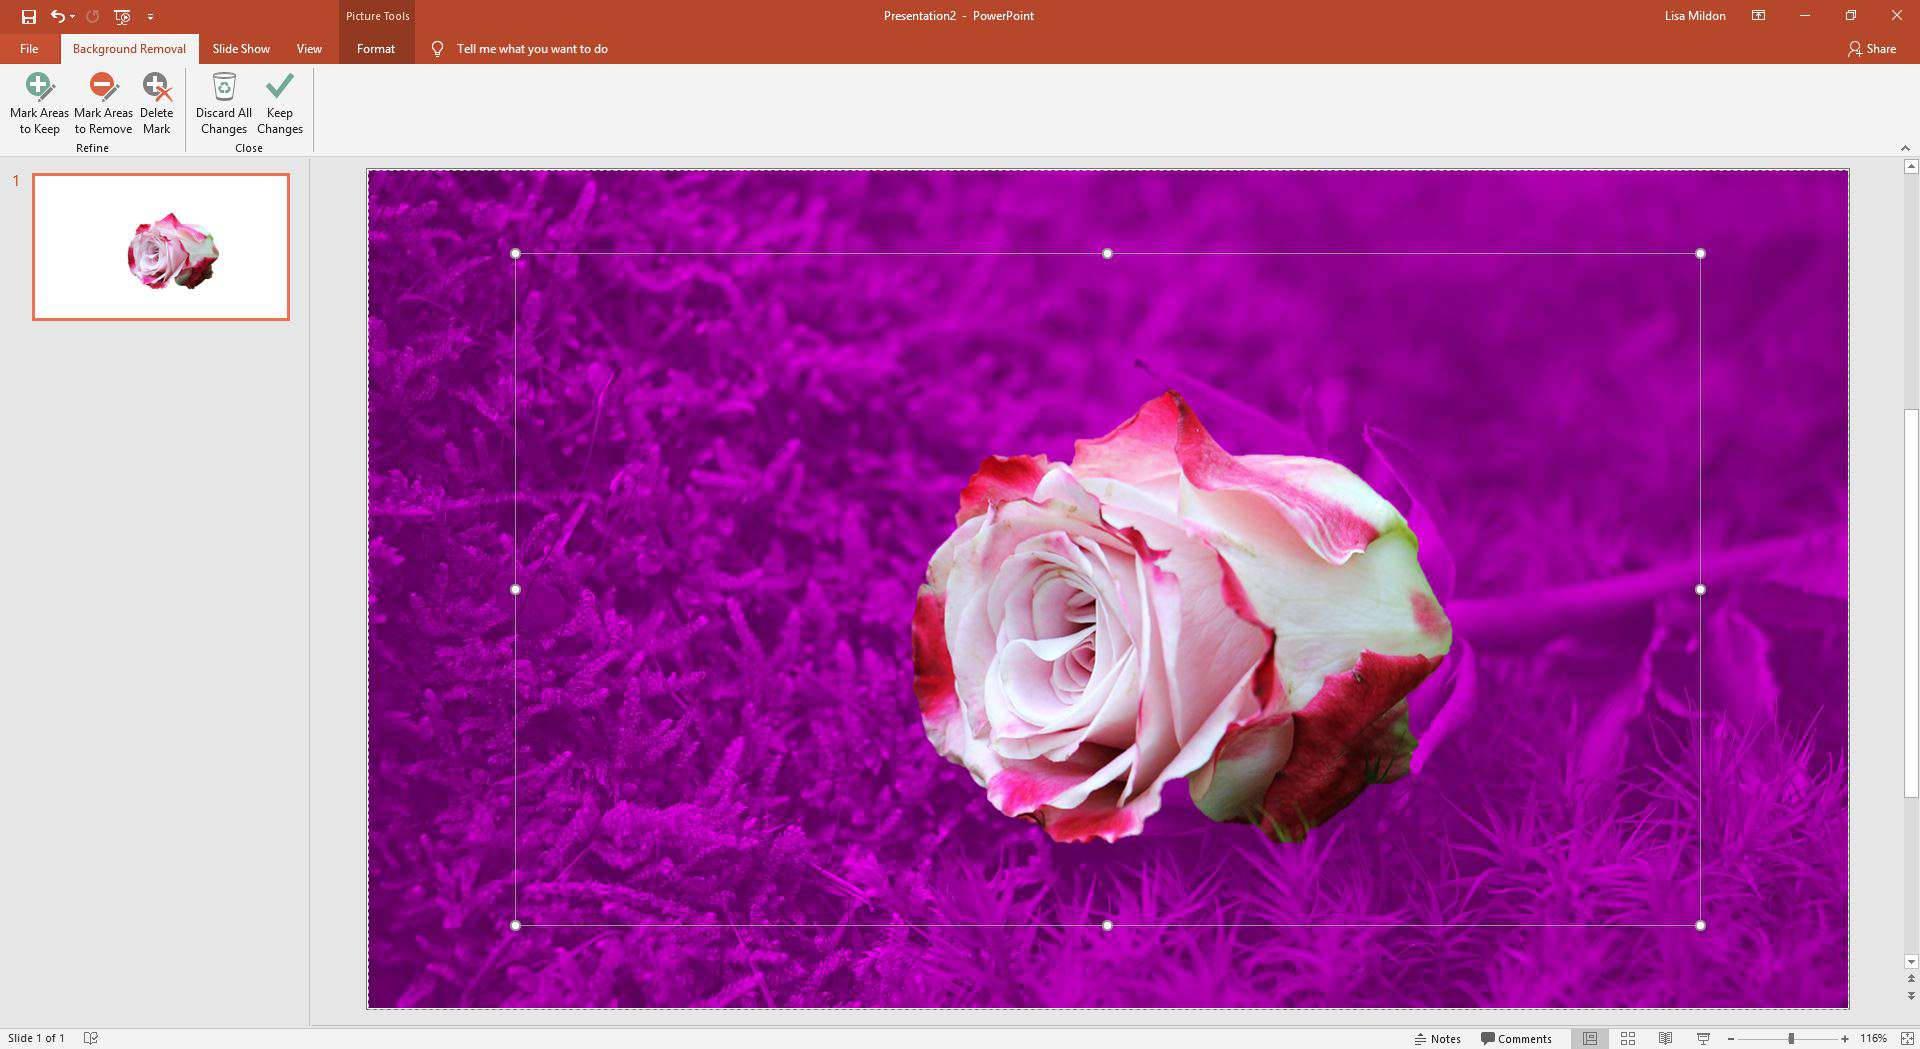 Background removal options in PowerPoint.